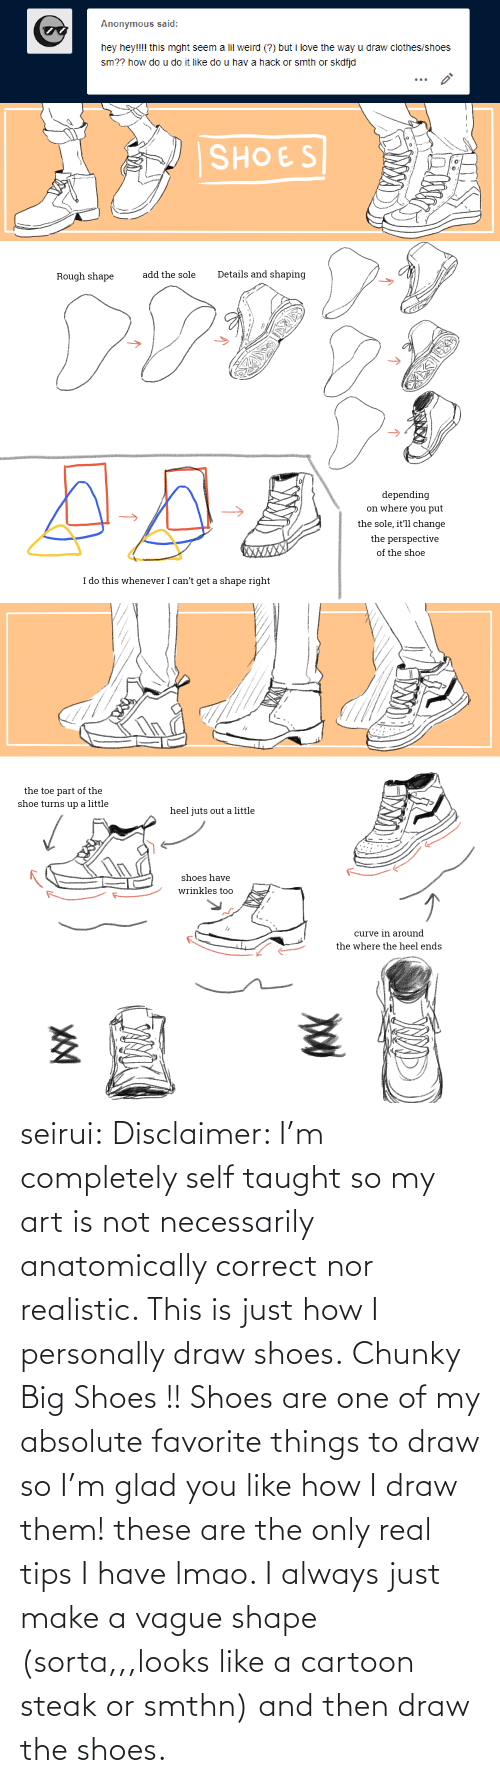 Personally: Anonymous said:  hey hey!!!! this mght seem a lil weird (?) but i love the way u draw clothes/shoes  sm?? how do u do it like do u hav a hack or smth or skdfjd   SHOES  Details and shaping  add the sole  Rough shape  depending  on where you put  the sole, it'll change  the perspective  XWXXX  of the shoe  I do this whenever I can't get a shape right   the toe part of the  shoe turns up a little  heel juts out a little  shoes have  wrinkles too  curve in around  the where the heel ends seirui: Disclaimer: I'm completely self taught so my art is not necessarily anatomically correct nor realistic. This is just how I personally draw shoes. Chunky Big Shoes !! Shoes are one of my absolute favorite things to draw so I'm glad you like how I draw them! these are the only real tips I have lmao. I always just make a vague shape (sorta,,,looks like a cartoon steak or smthn) and then draw the shoes.